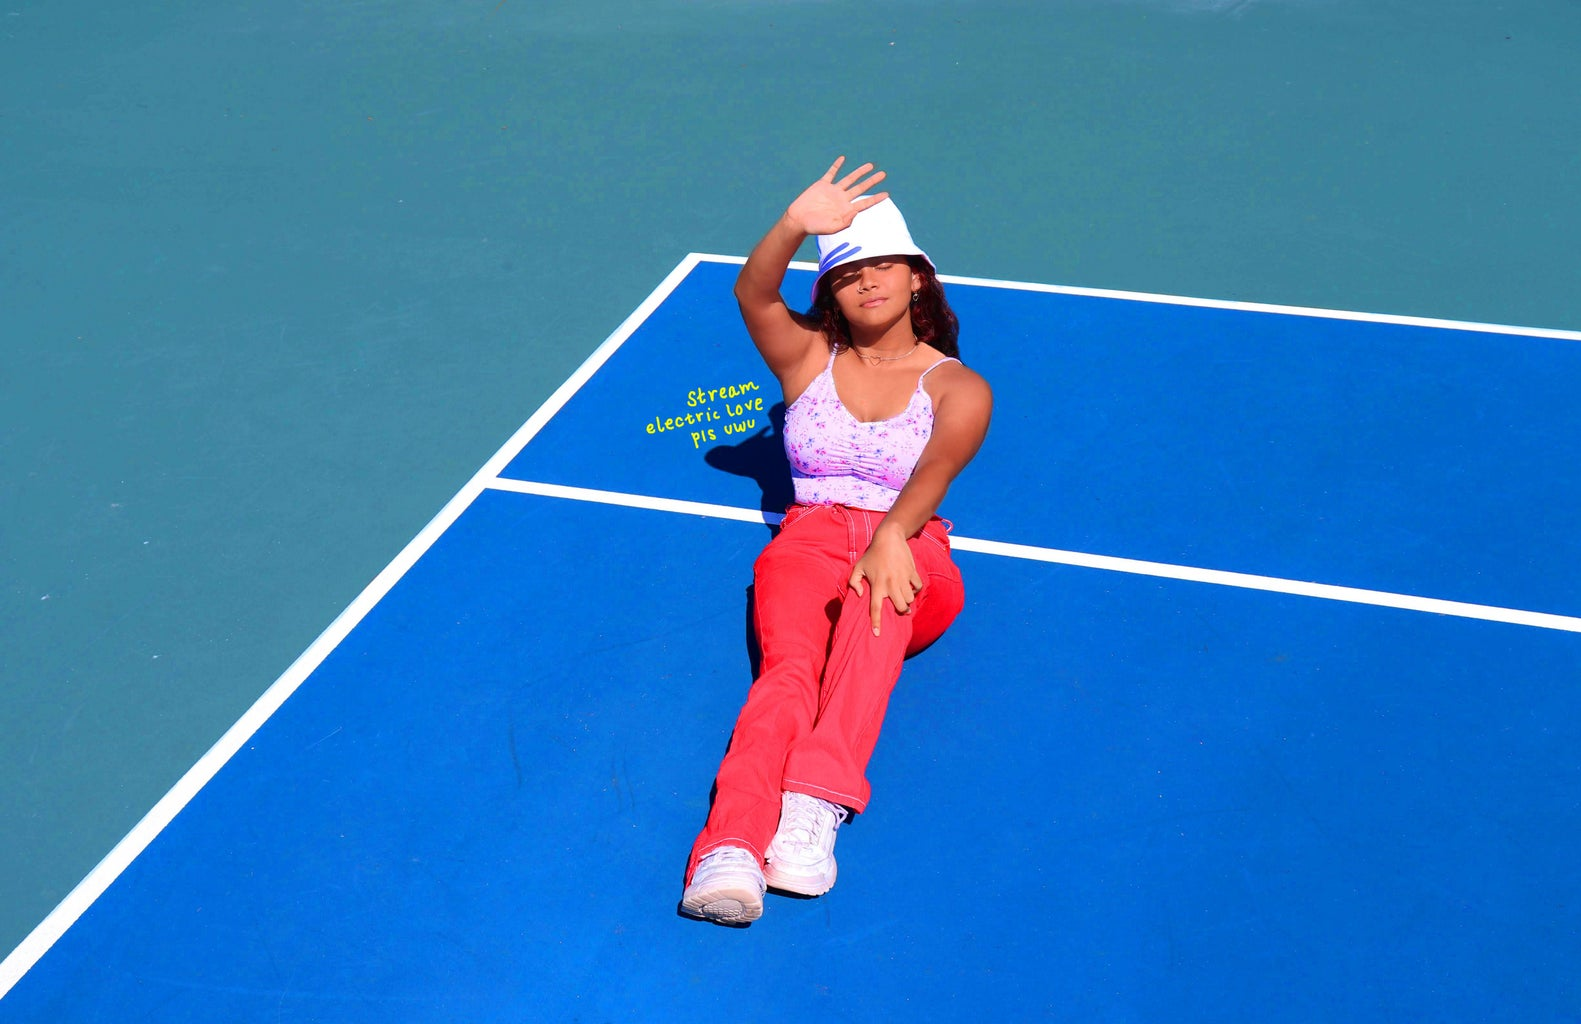 """Girl is sitting in a tennis court wearing a white hat and colorful pants. She is holding her hand up to block the sun. The words \""""stream electric luv\"""" is written, and the photo is edited to have a retro effect."""